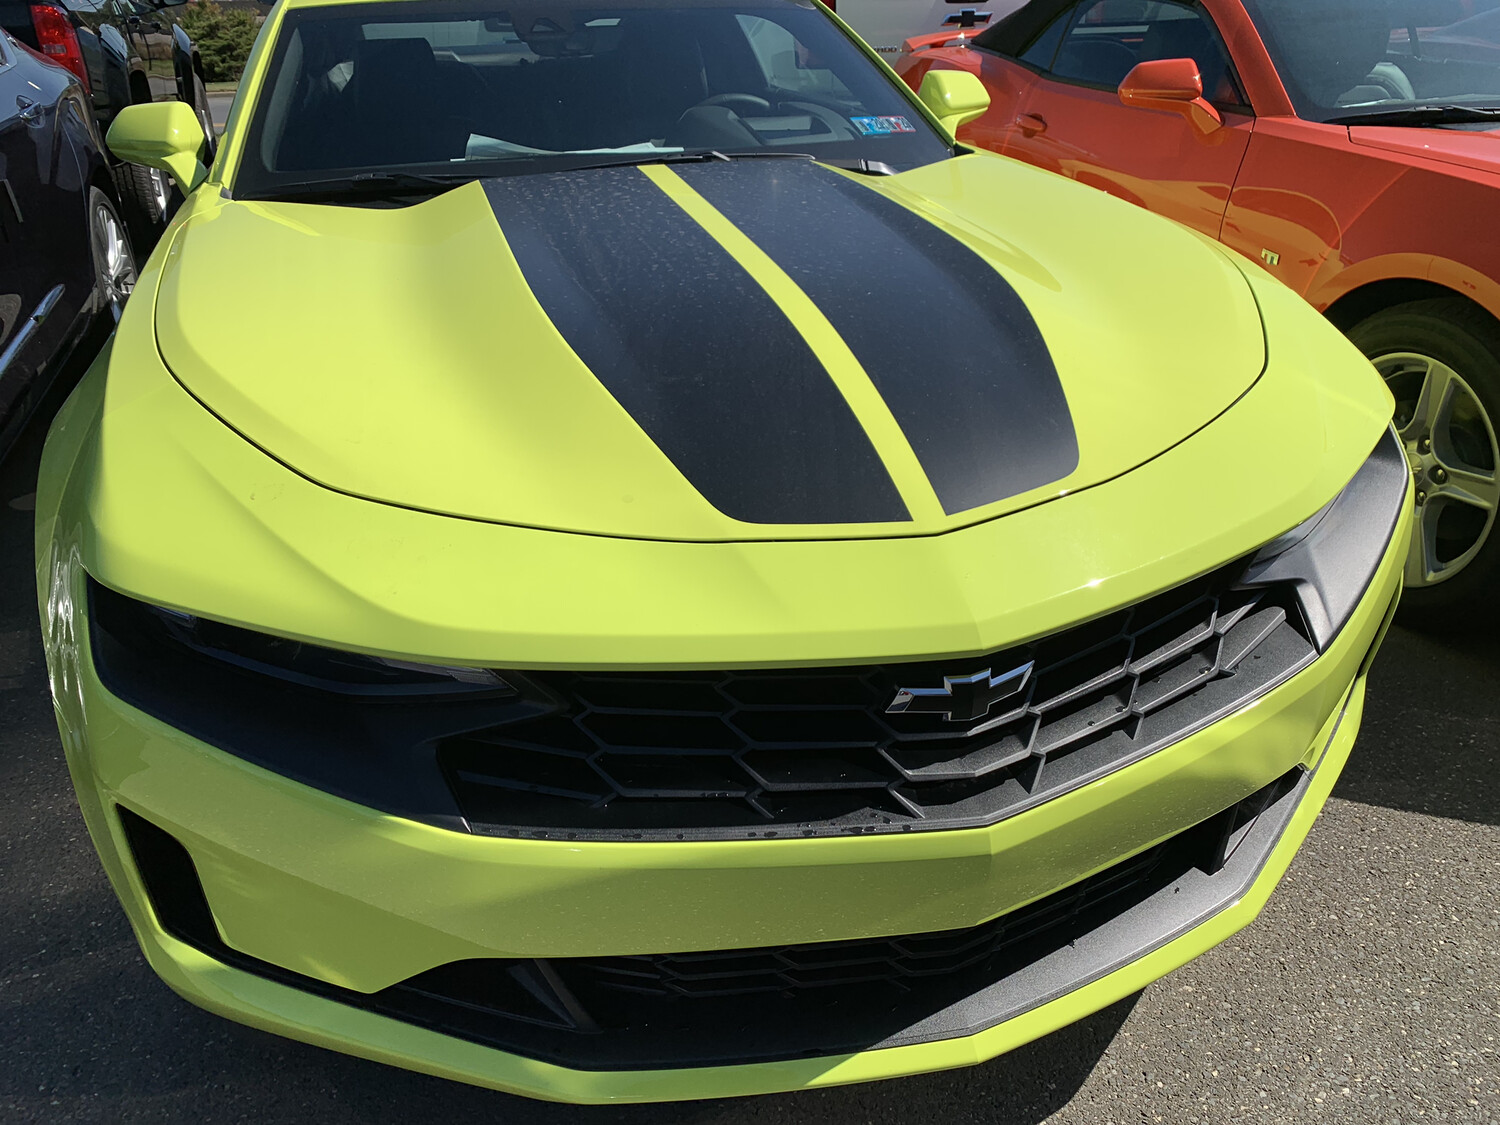 2019 - up Camaro Coupe Factory Style Dual Rally Stripes SS RS LT V8 V6 Turbo 4